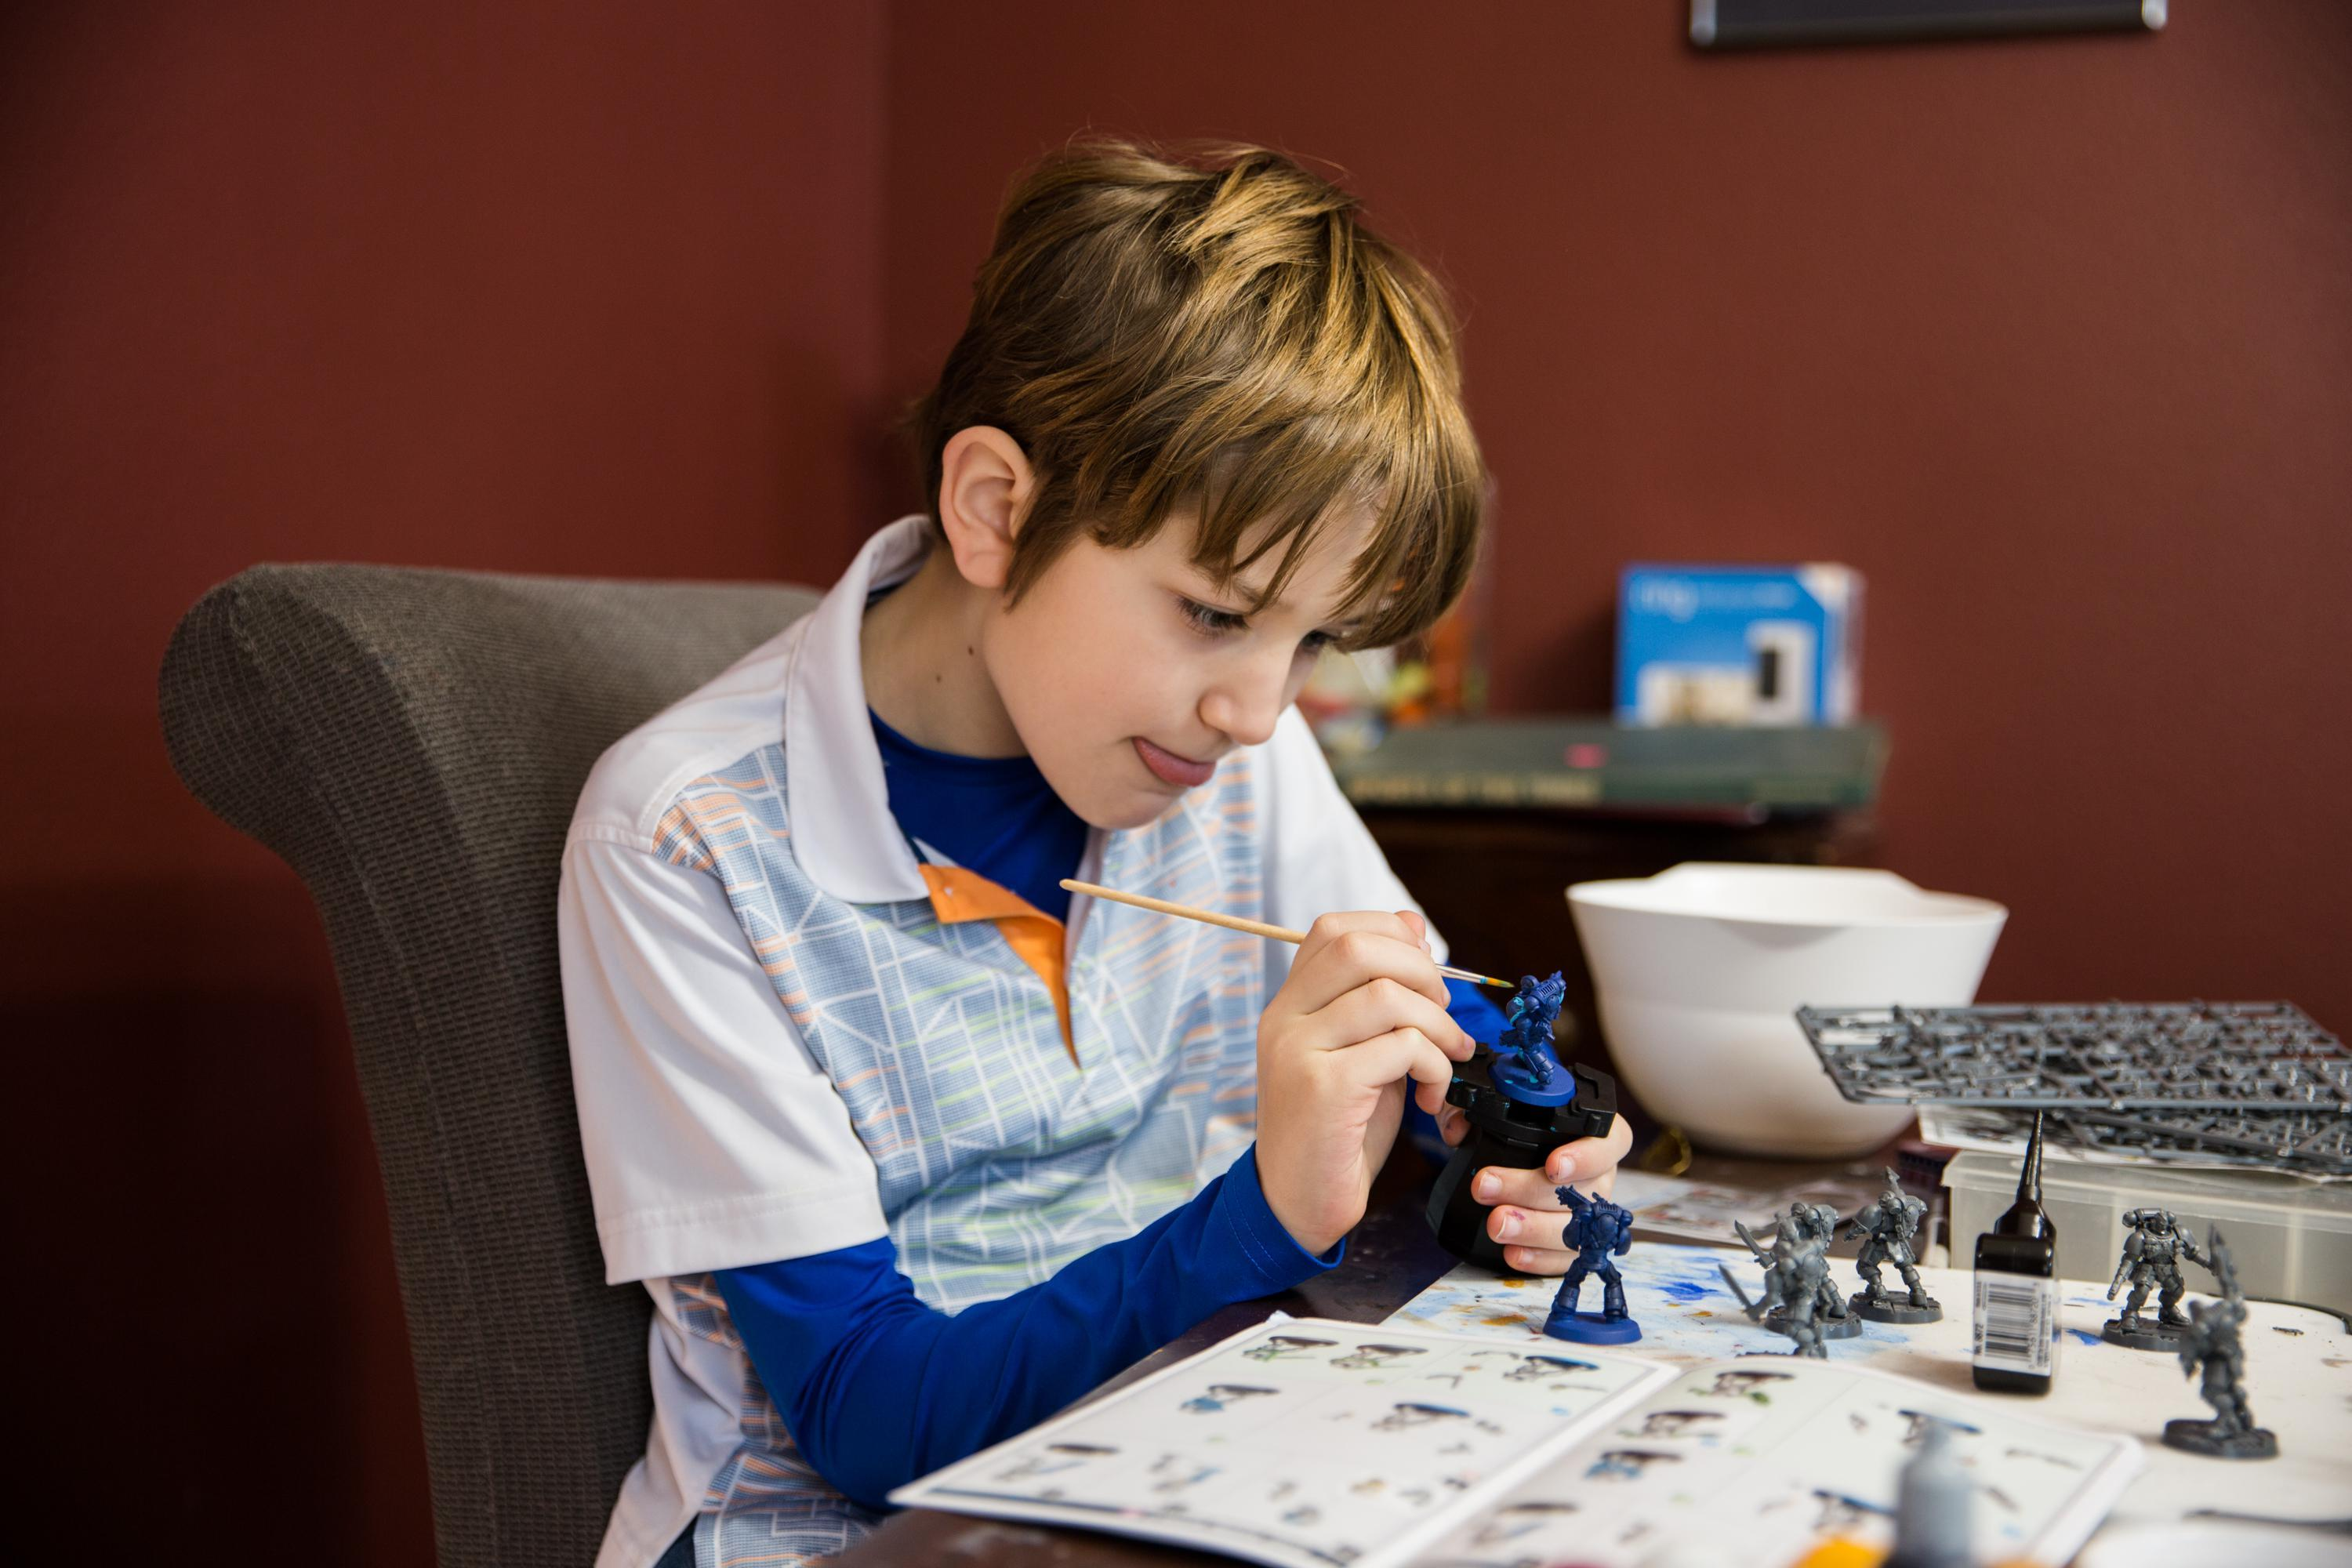 Ten-year-old Landon paints a model at his family's dining room table in Vancouver, Wa., Thursday, Feb. 28, 2019.